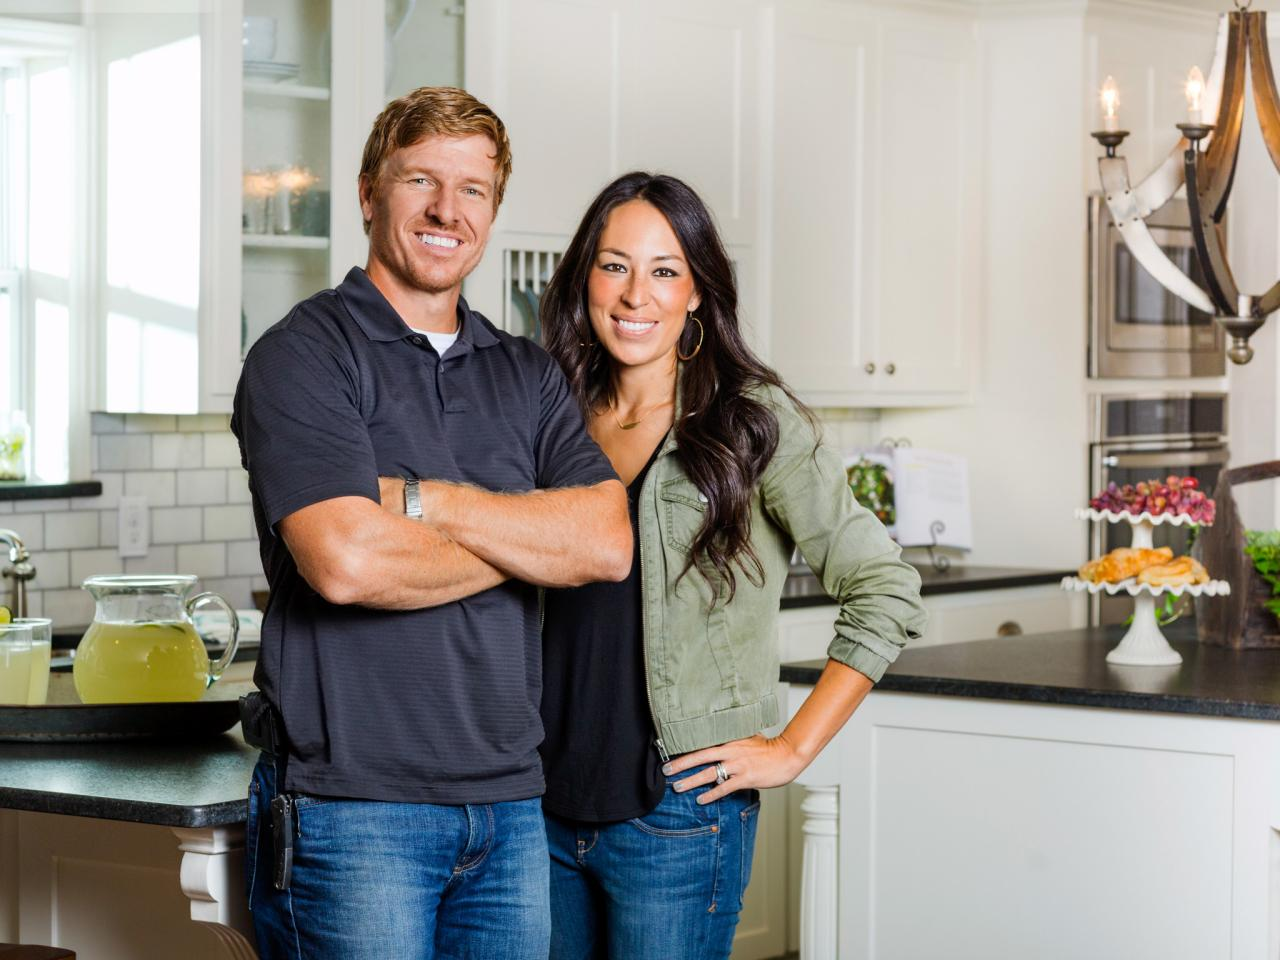 Chip and Joanna Gaines' Magnolia network to debut on October 4